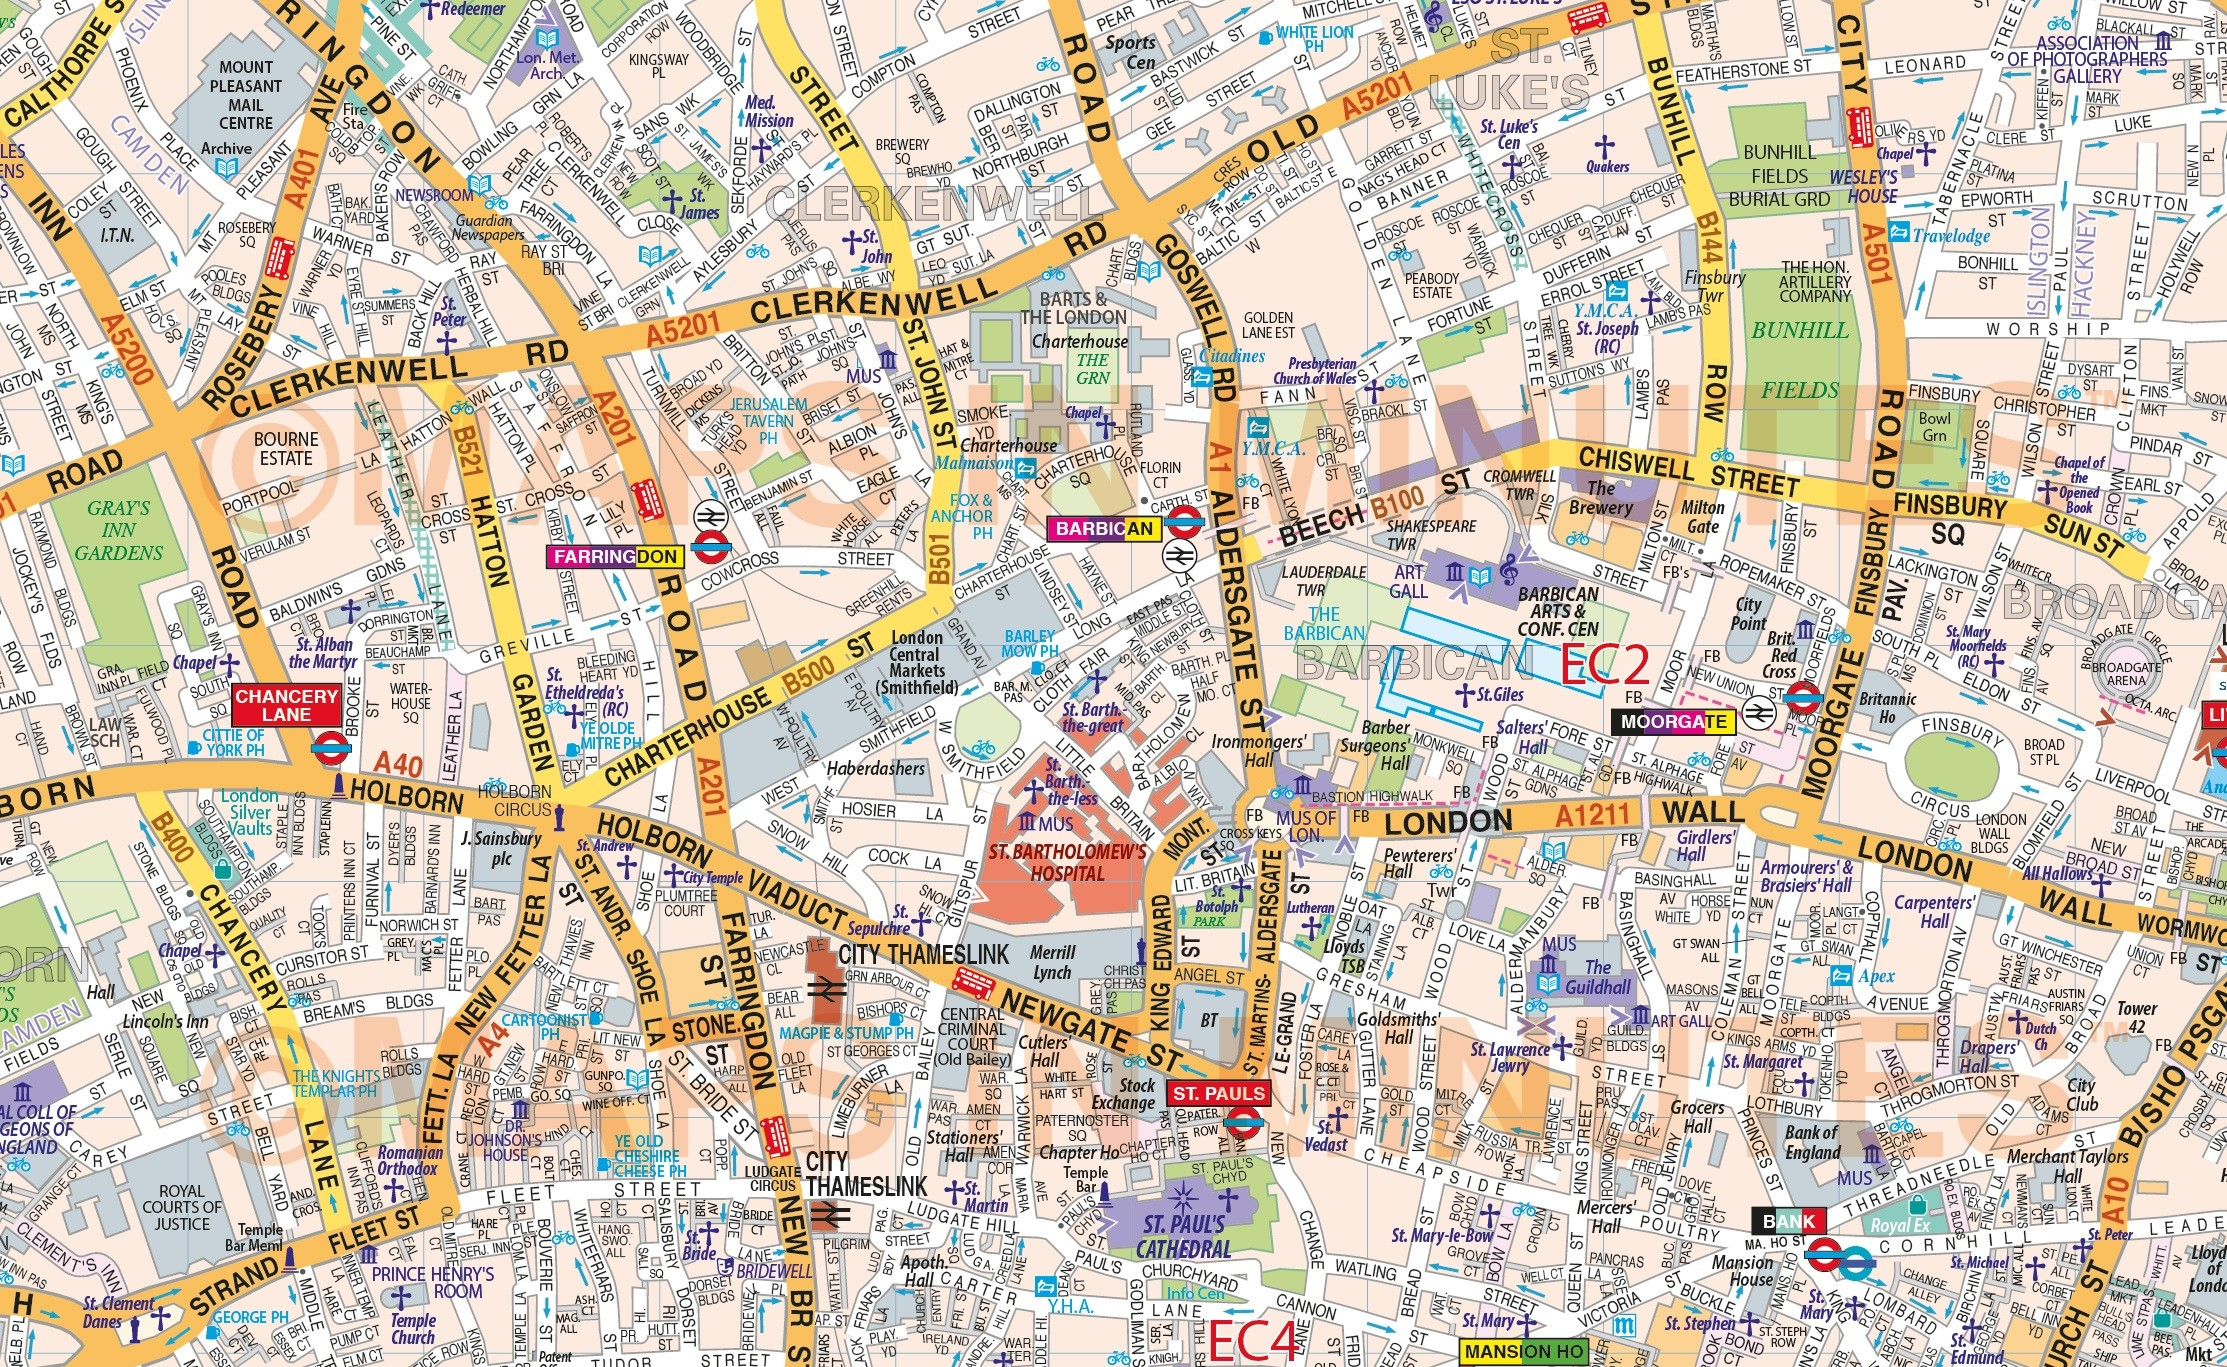 London Street Map VINYL Central London Street Map   Large size 1.2m d x 1.67m w London Street Map